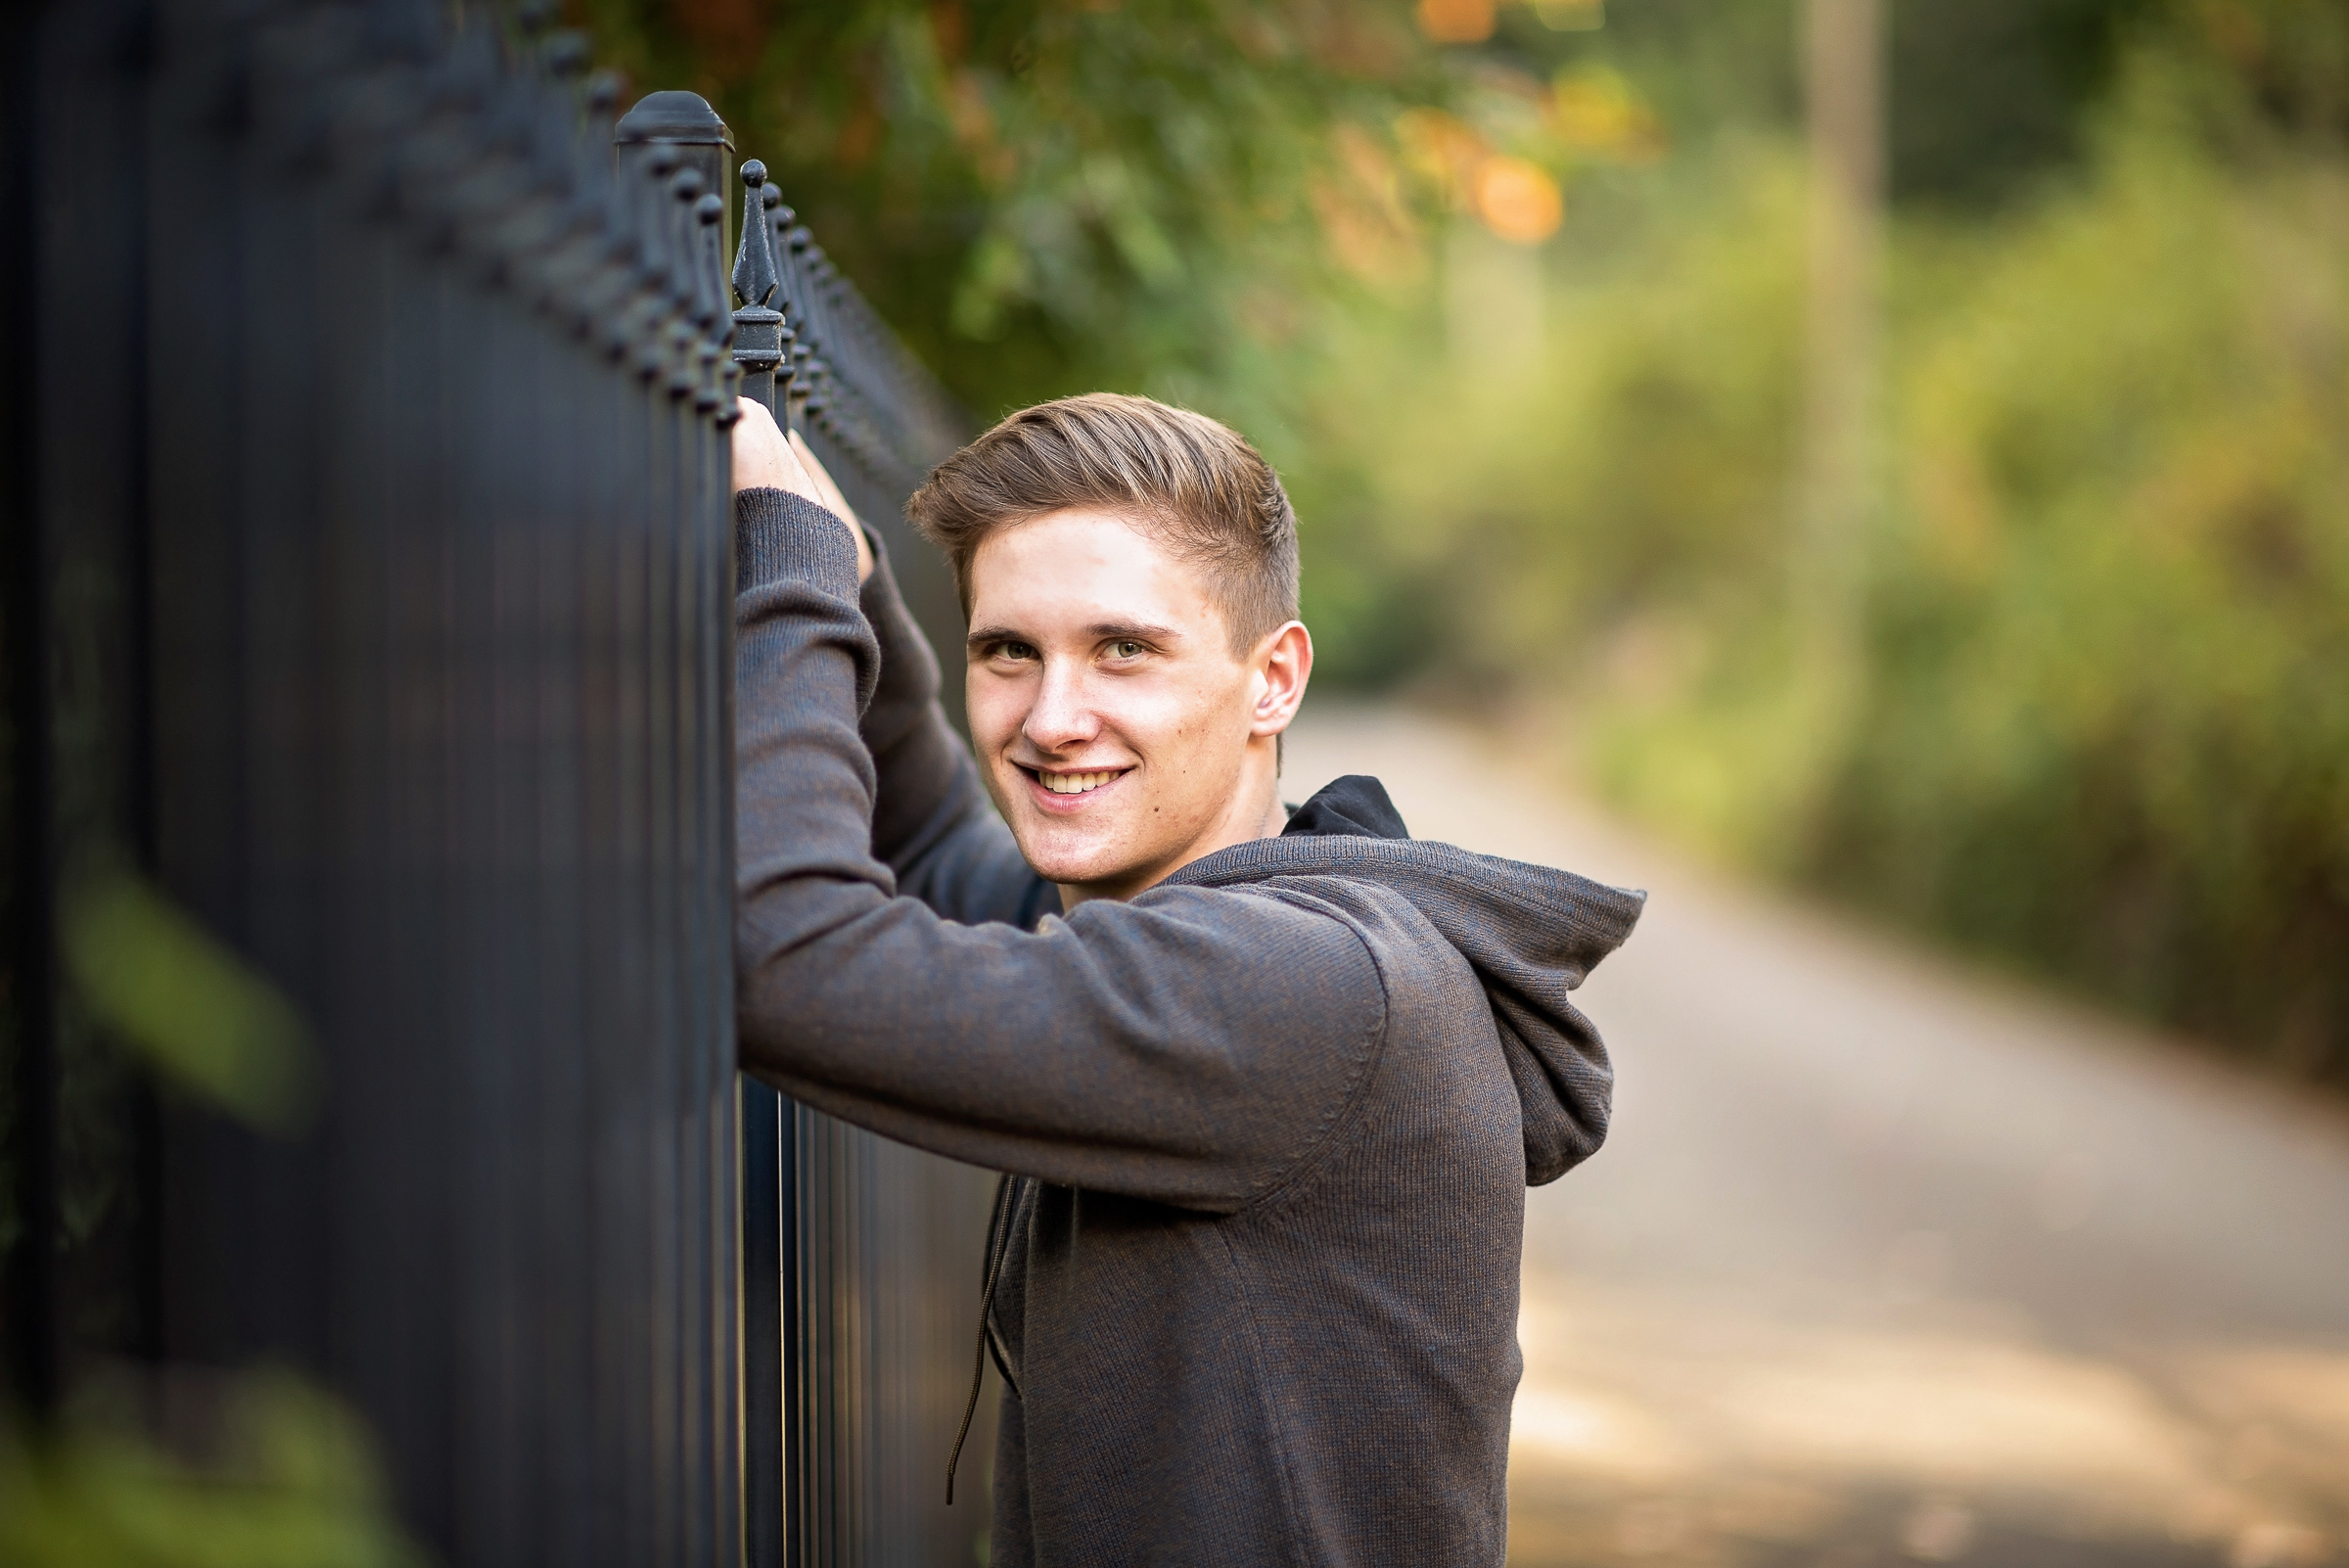 Cody's-Benbow Inn-Humboldt County-Senior Session-Parky's Pics_-20.JPG